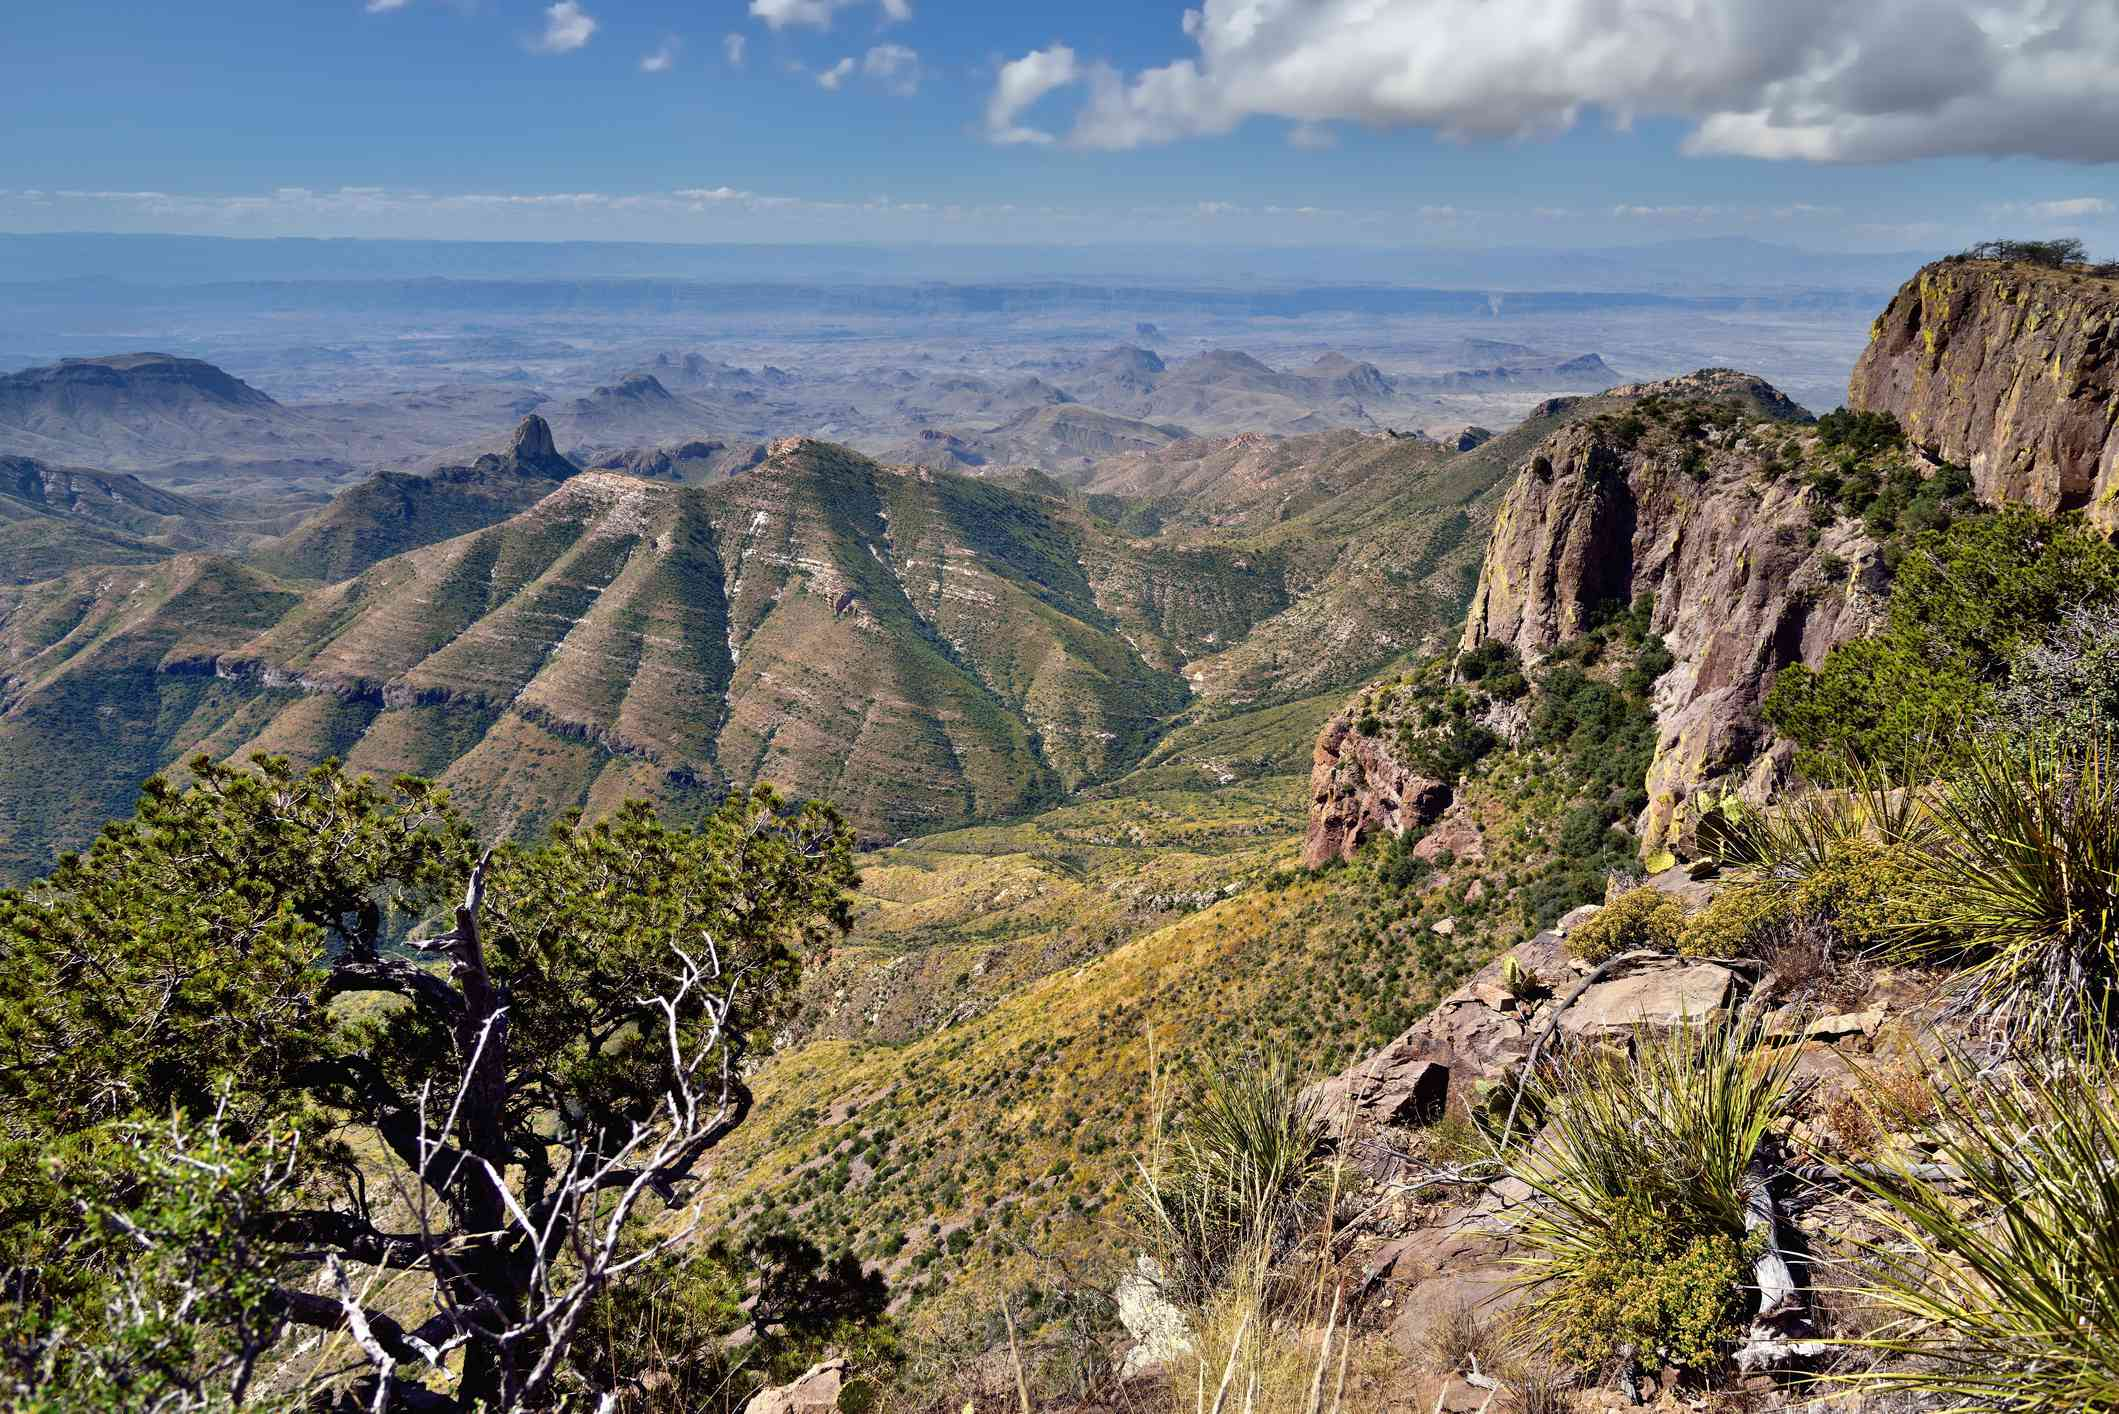 Blue Skies and Clouds Above the Peaks and Mountainsides of the Chisos Mountains